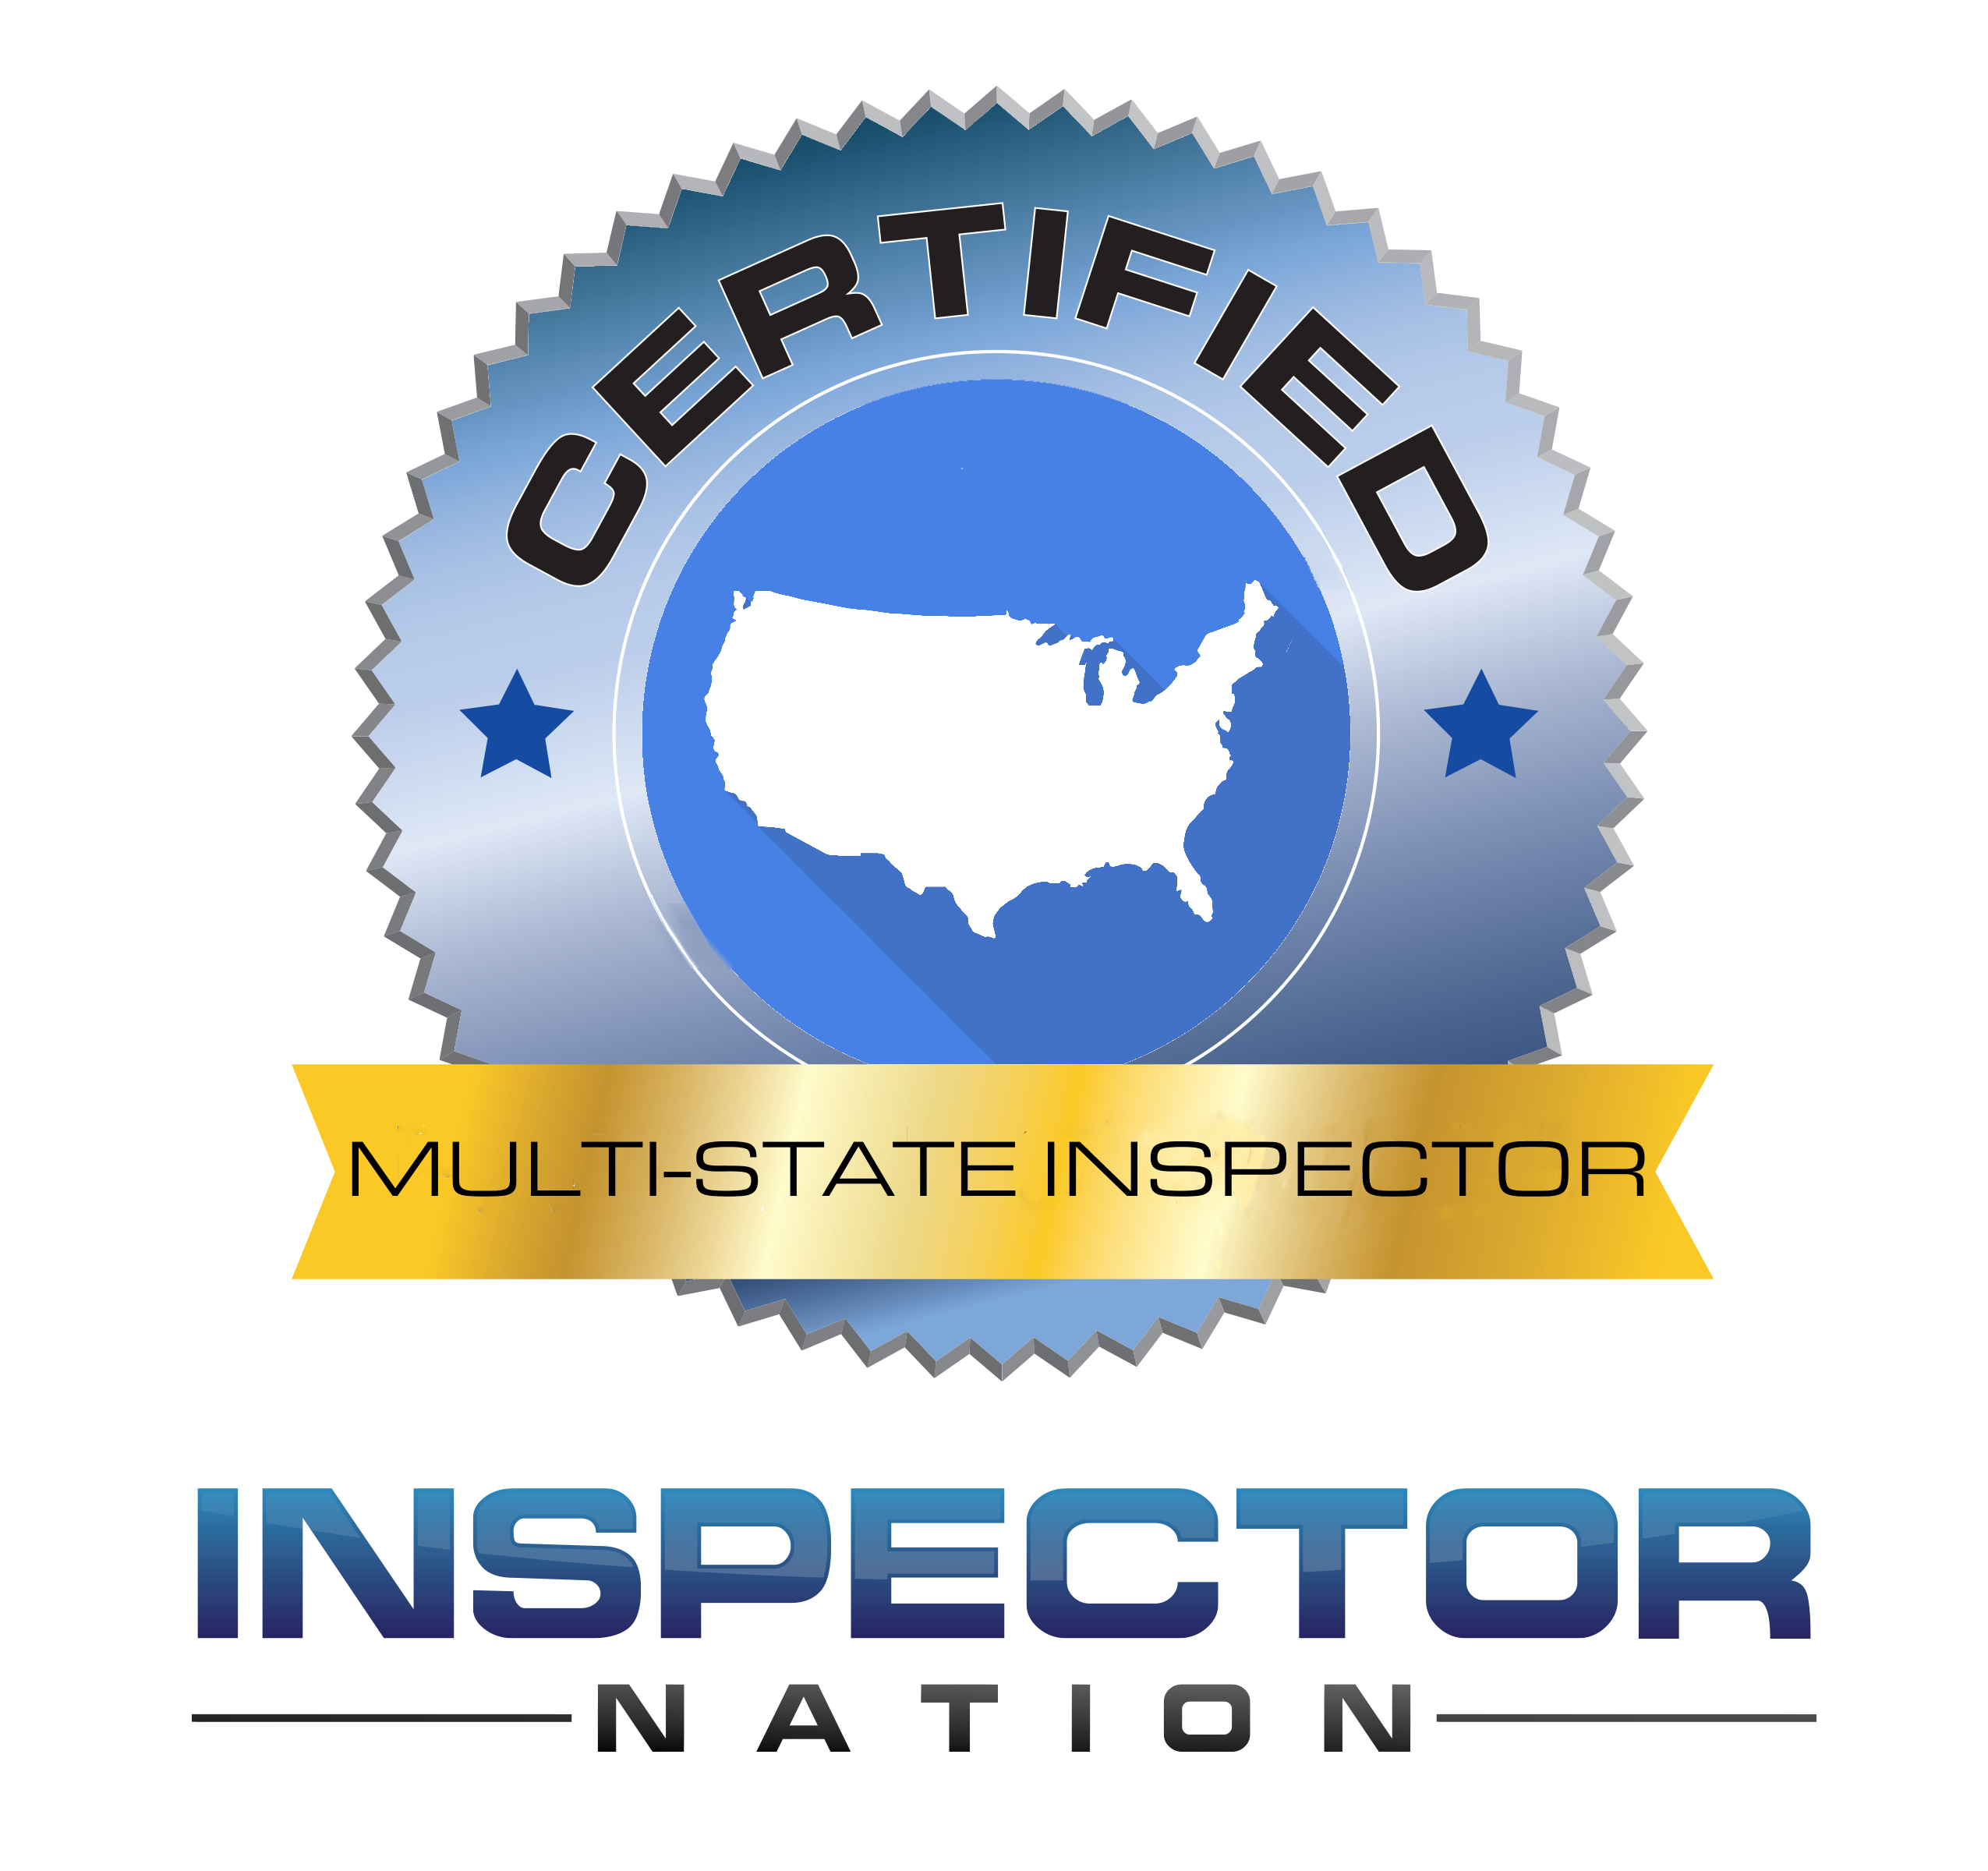 multi-state inspector nation certified home inspector badge emblem icon